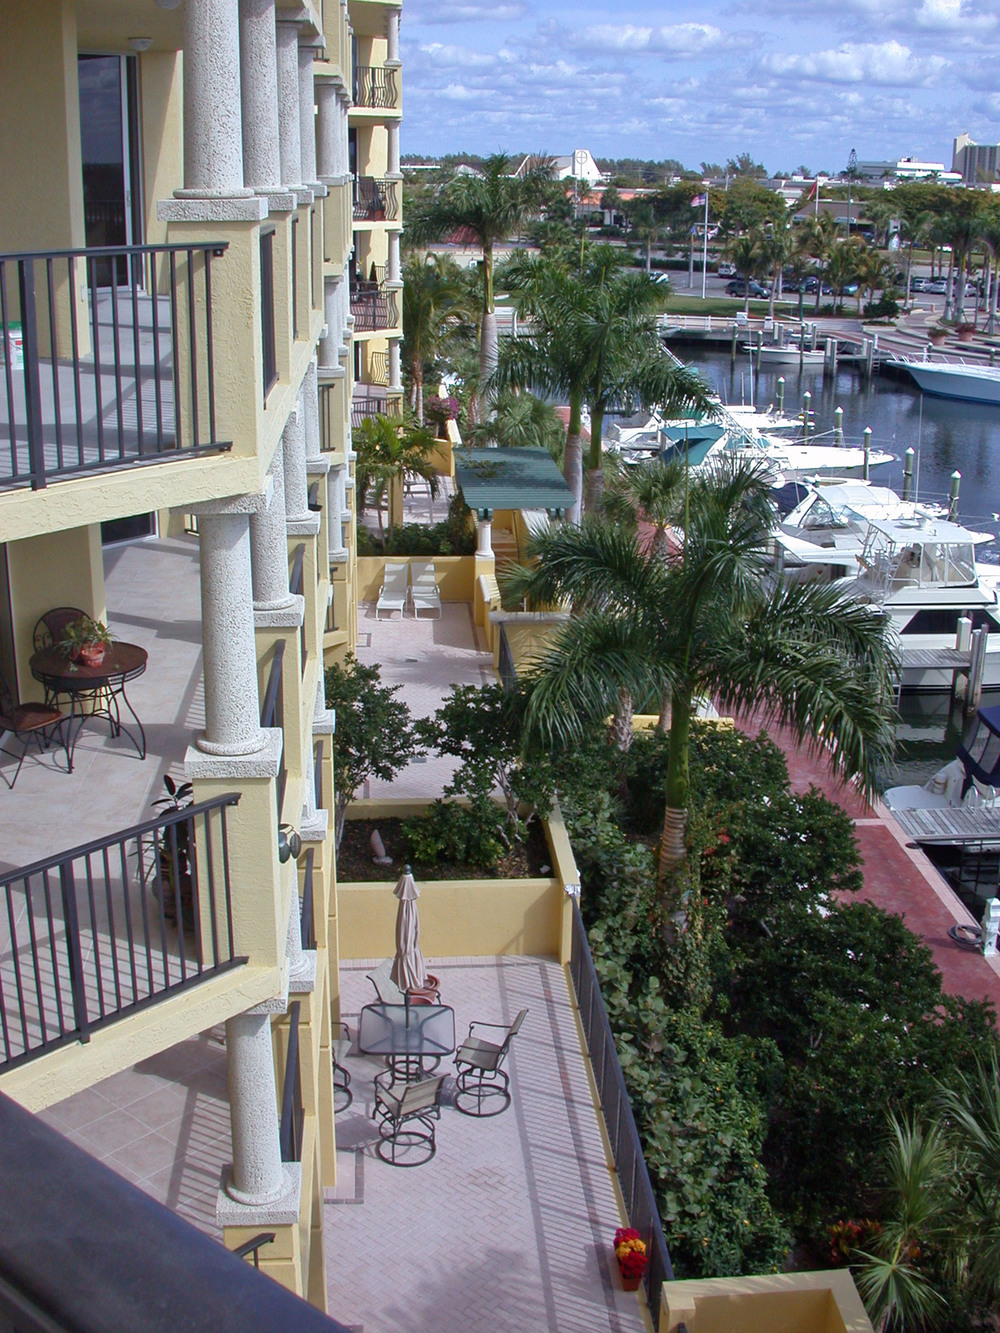 Jupiter Yacht Club Florida Condos Overlooking the Marina.jpg